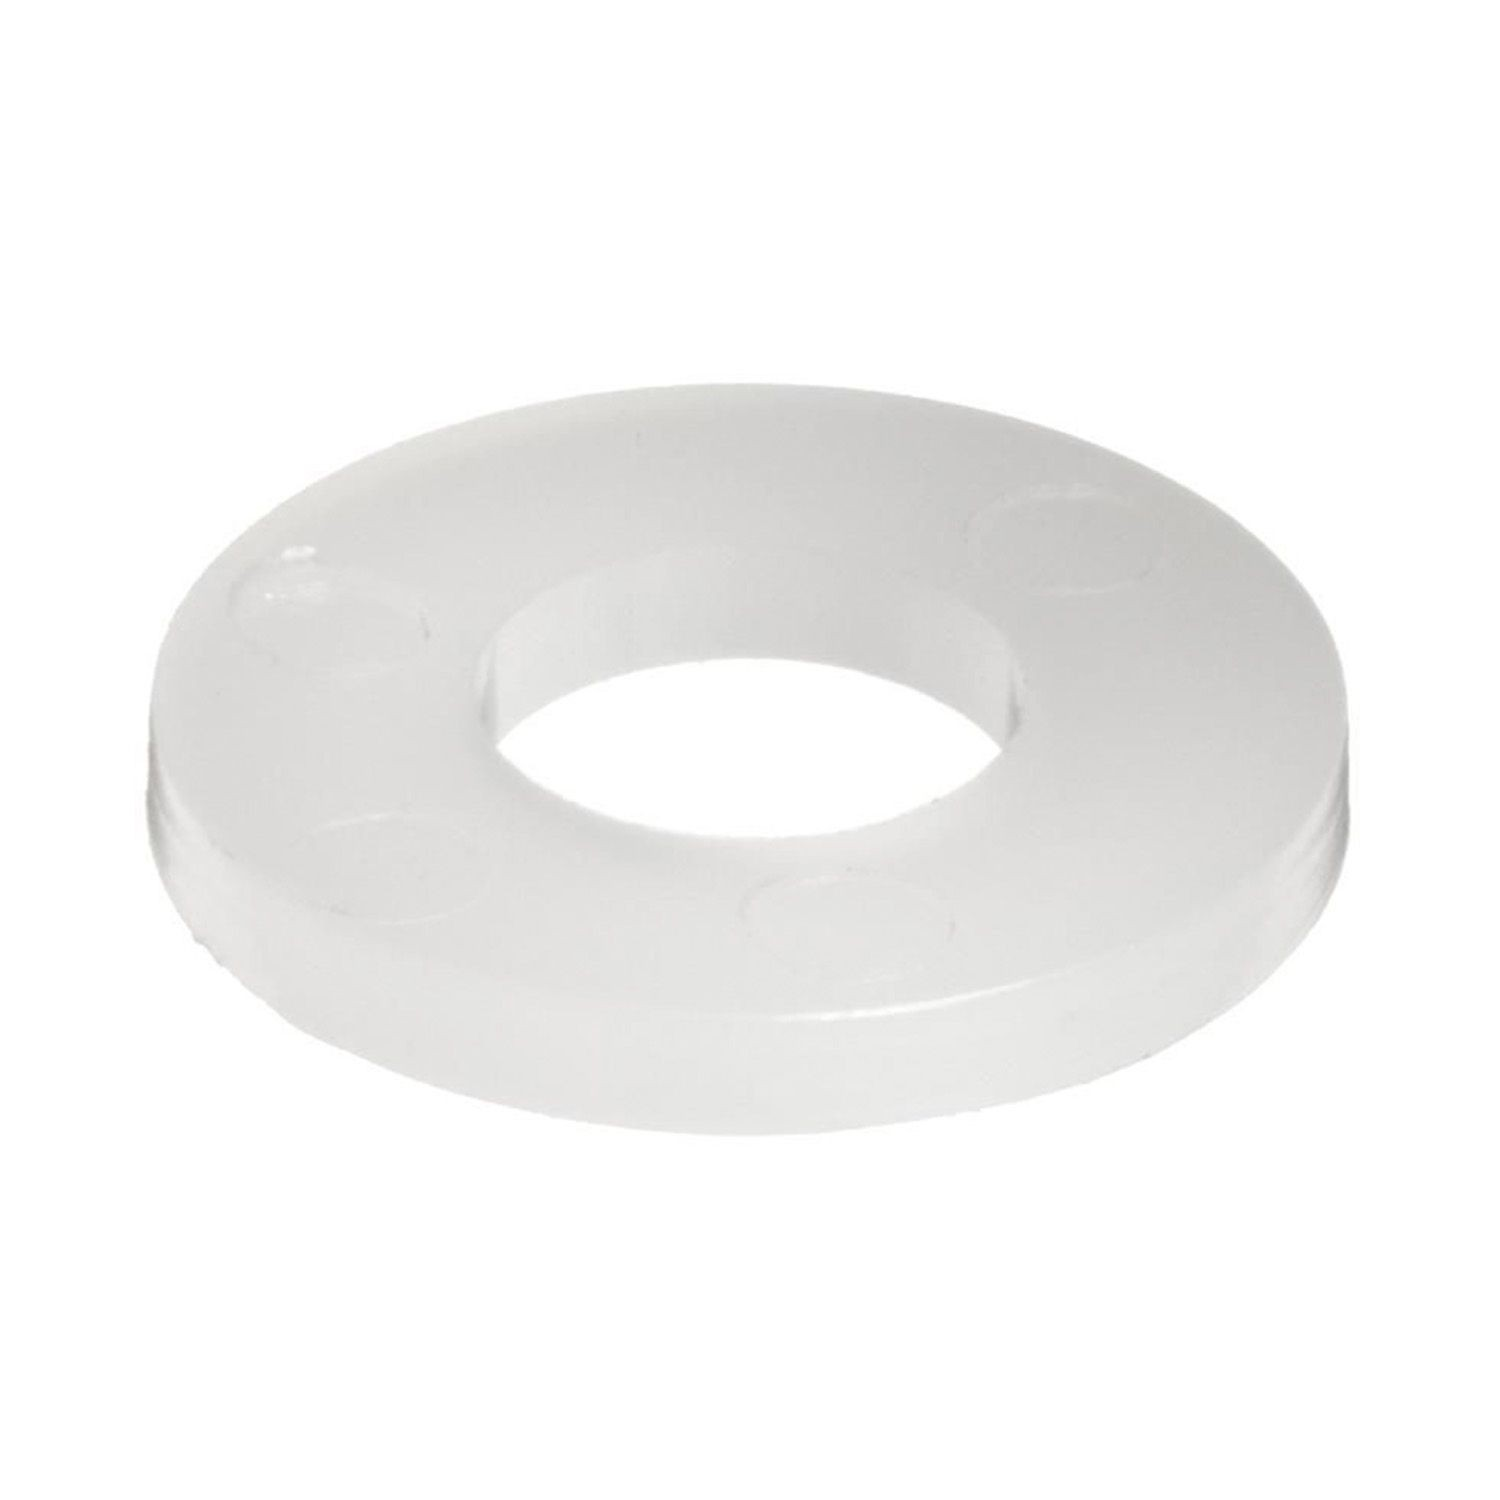 #10 Nylon 6/6 Flat Washer